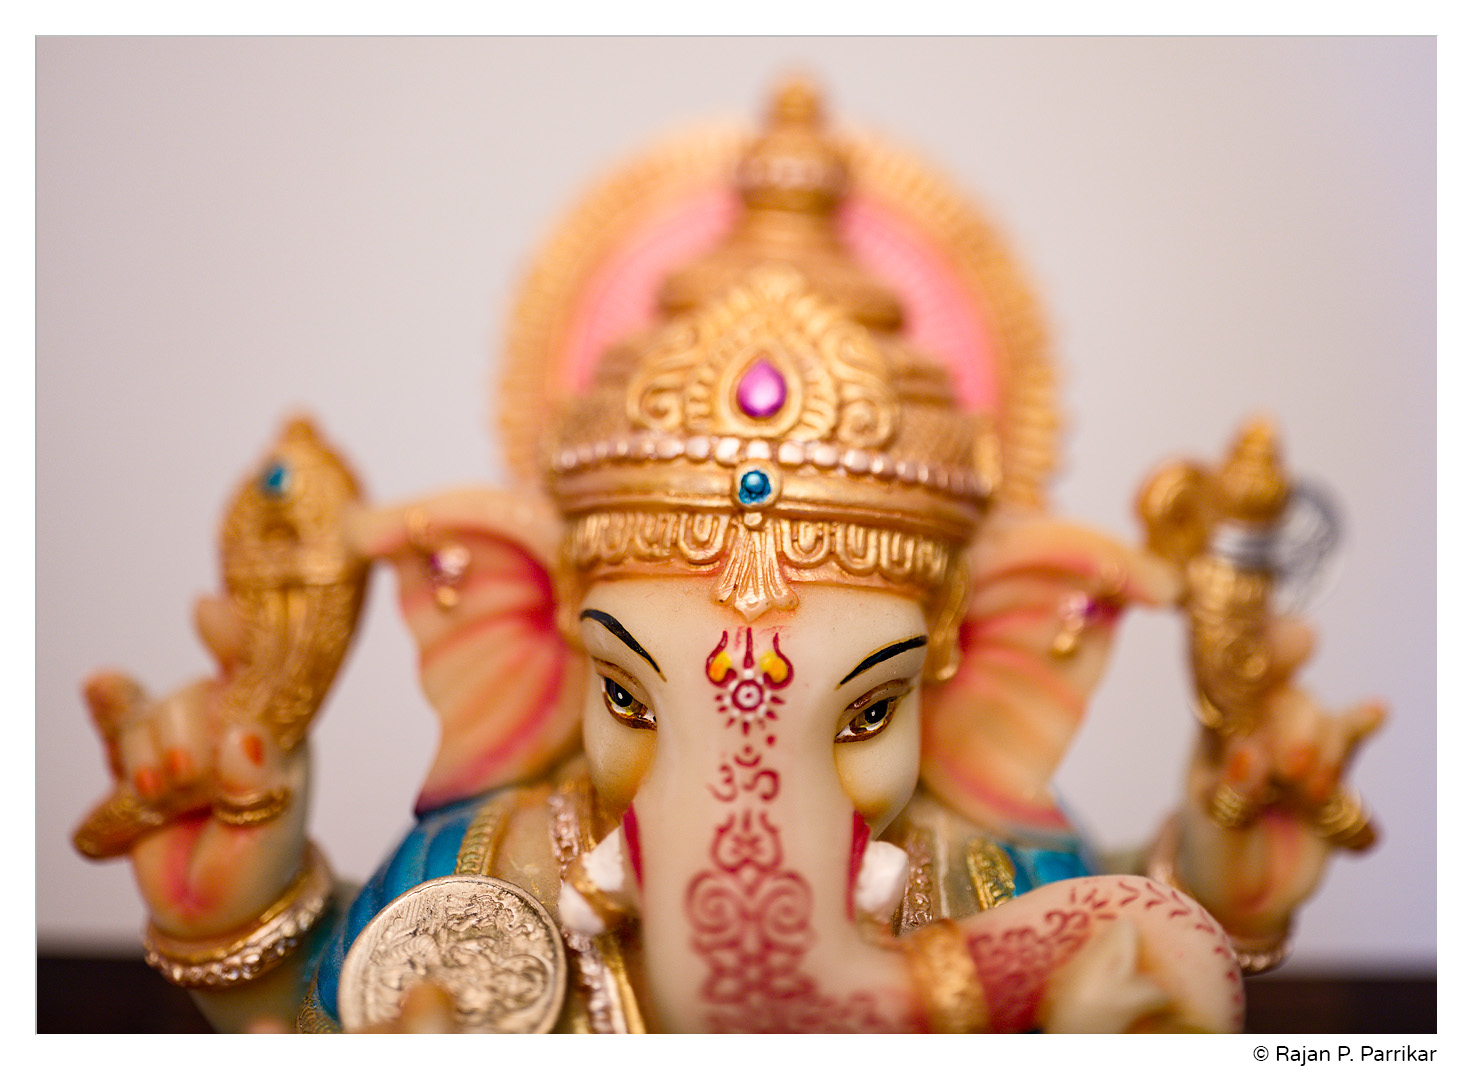 Ganesha with Canon TS-E 50mm f/2.8 L lens